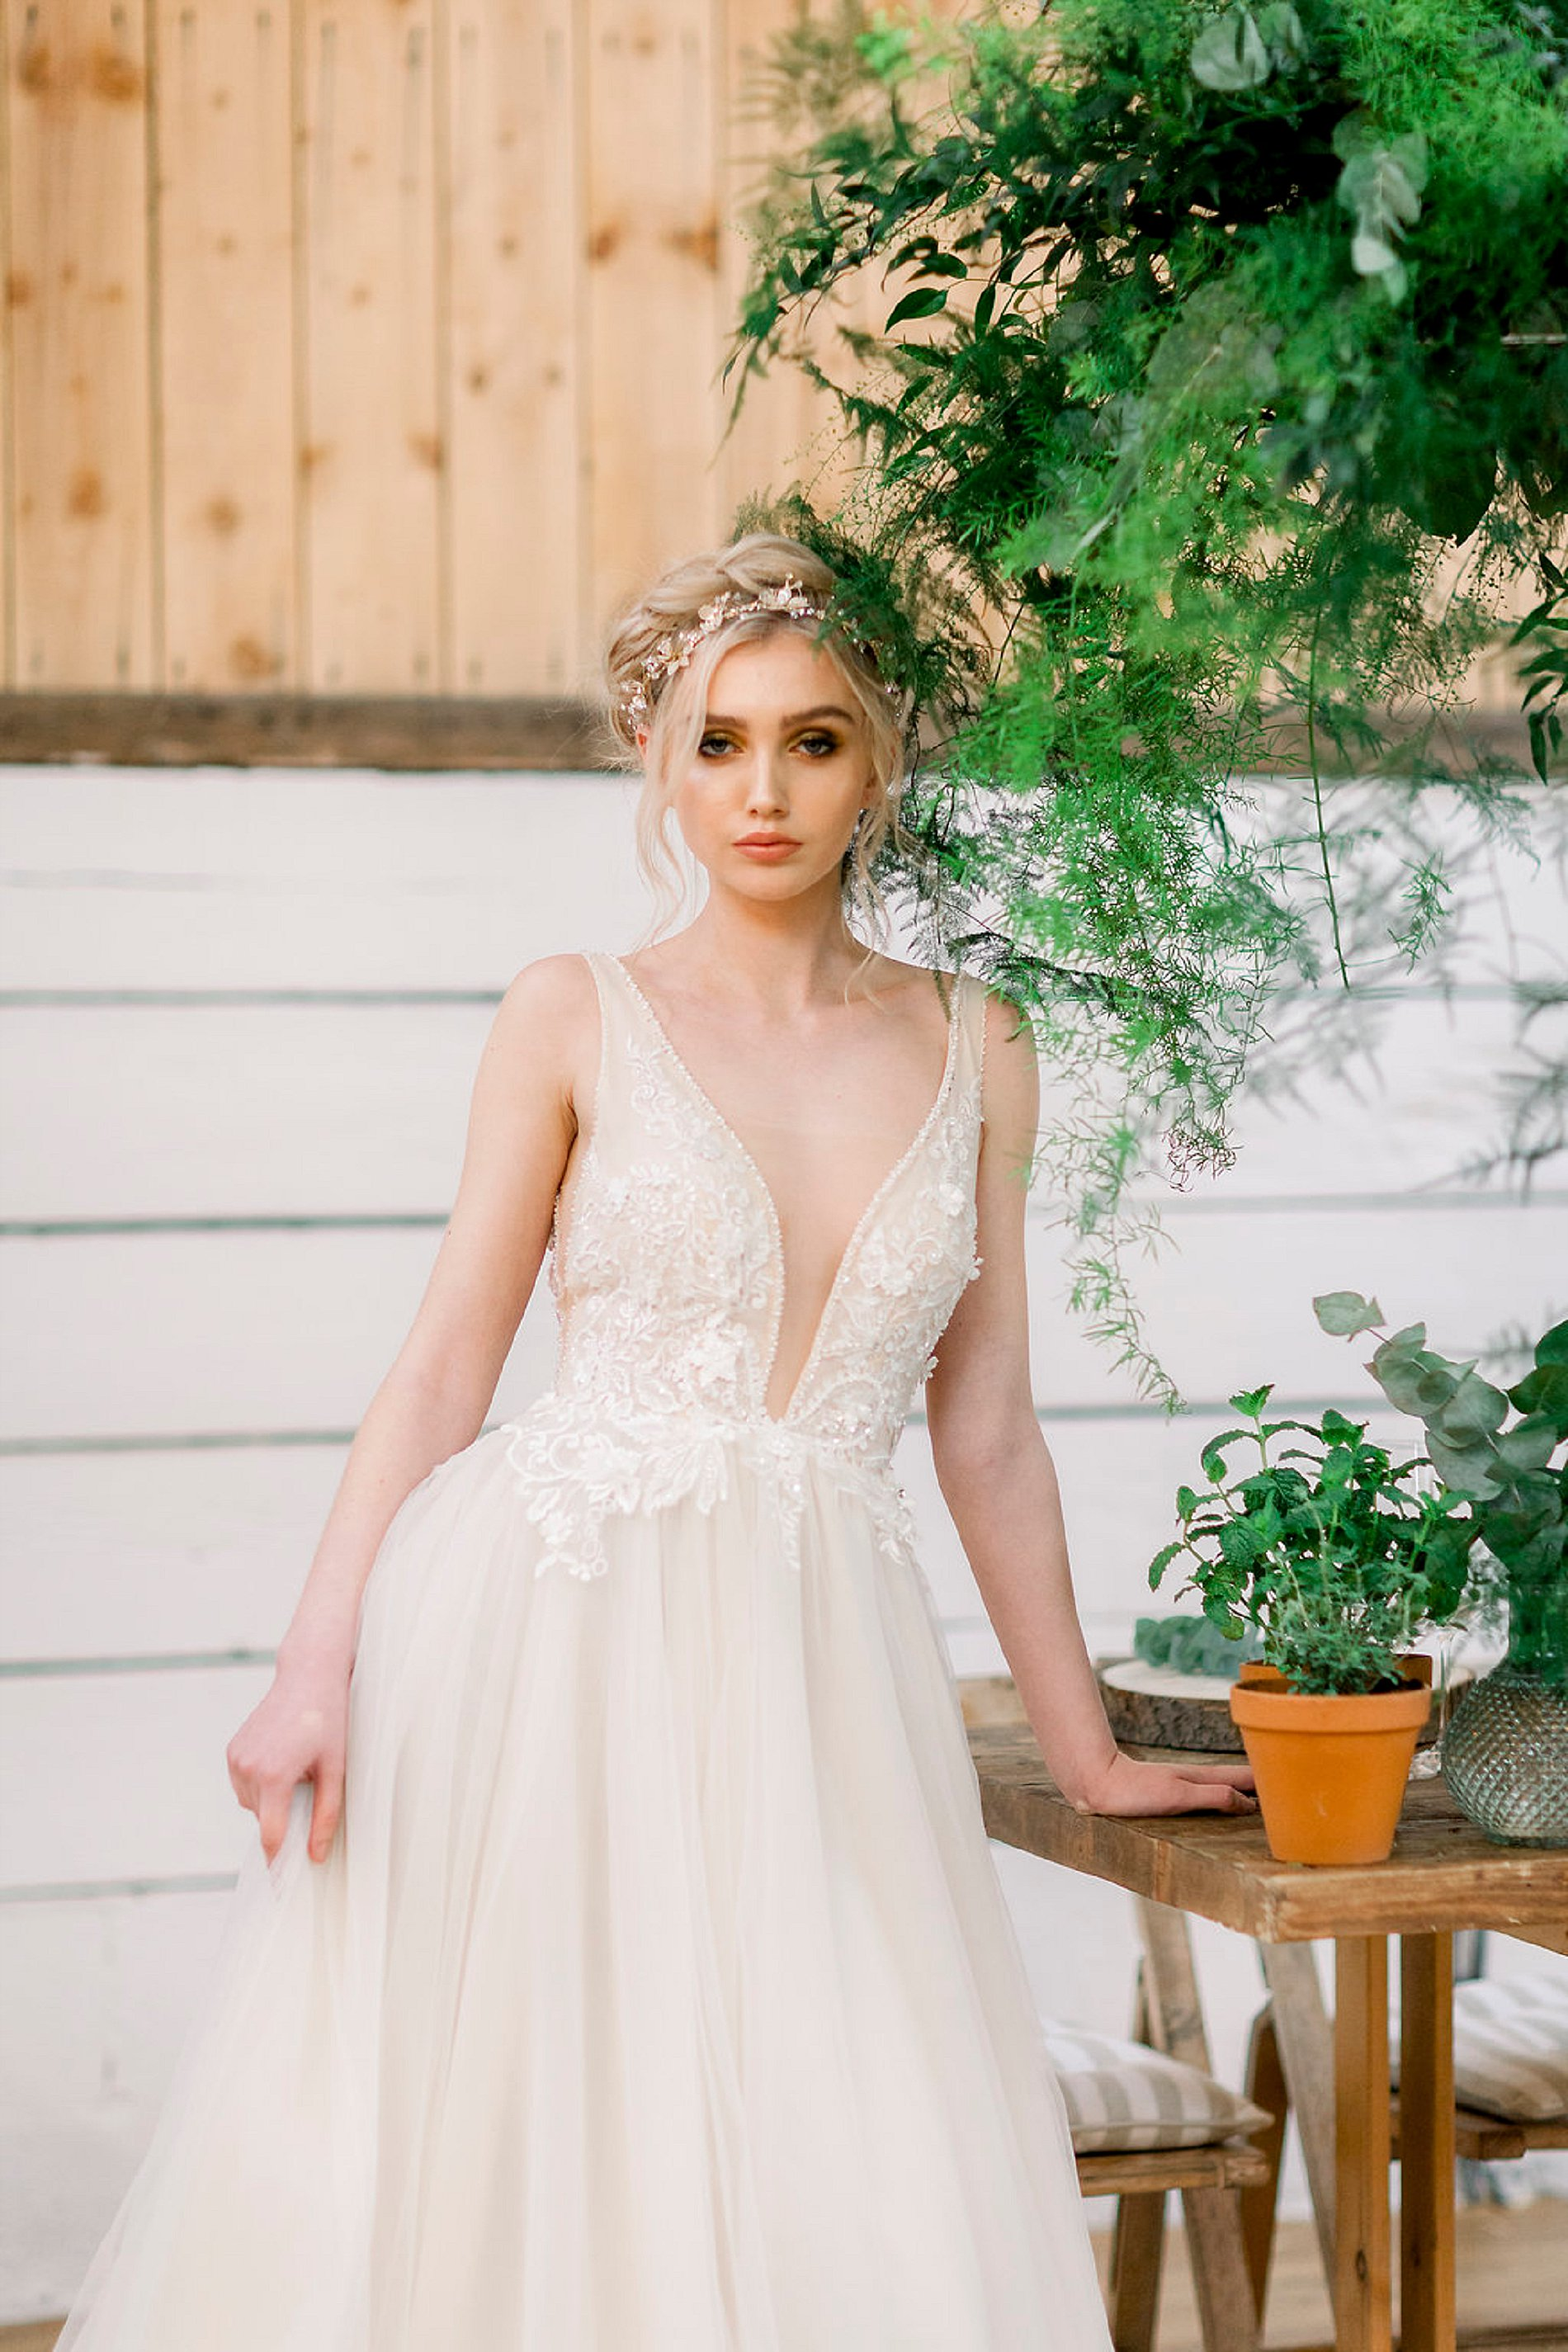 Super Natural Creative Bridal Editorial (c) Jo Bradbury (25)